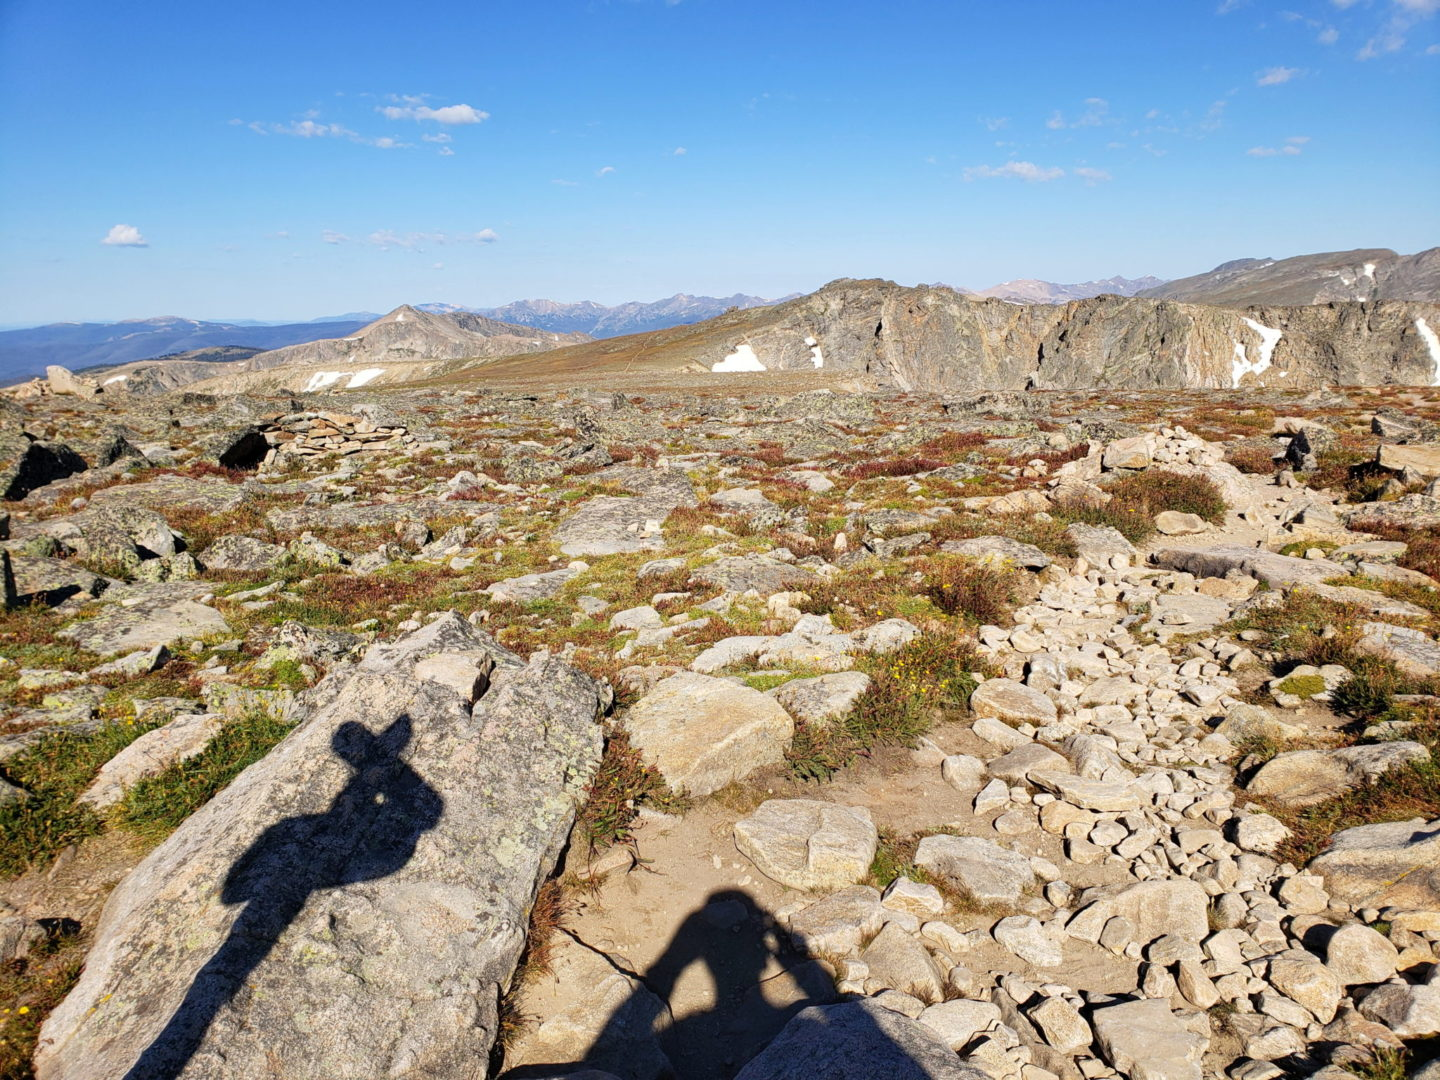 View from the summit of Flattop Mountain (12,324')